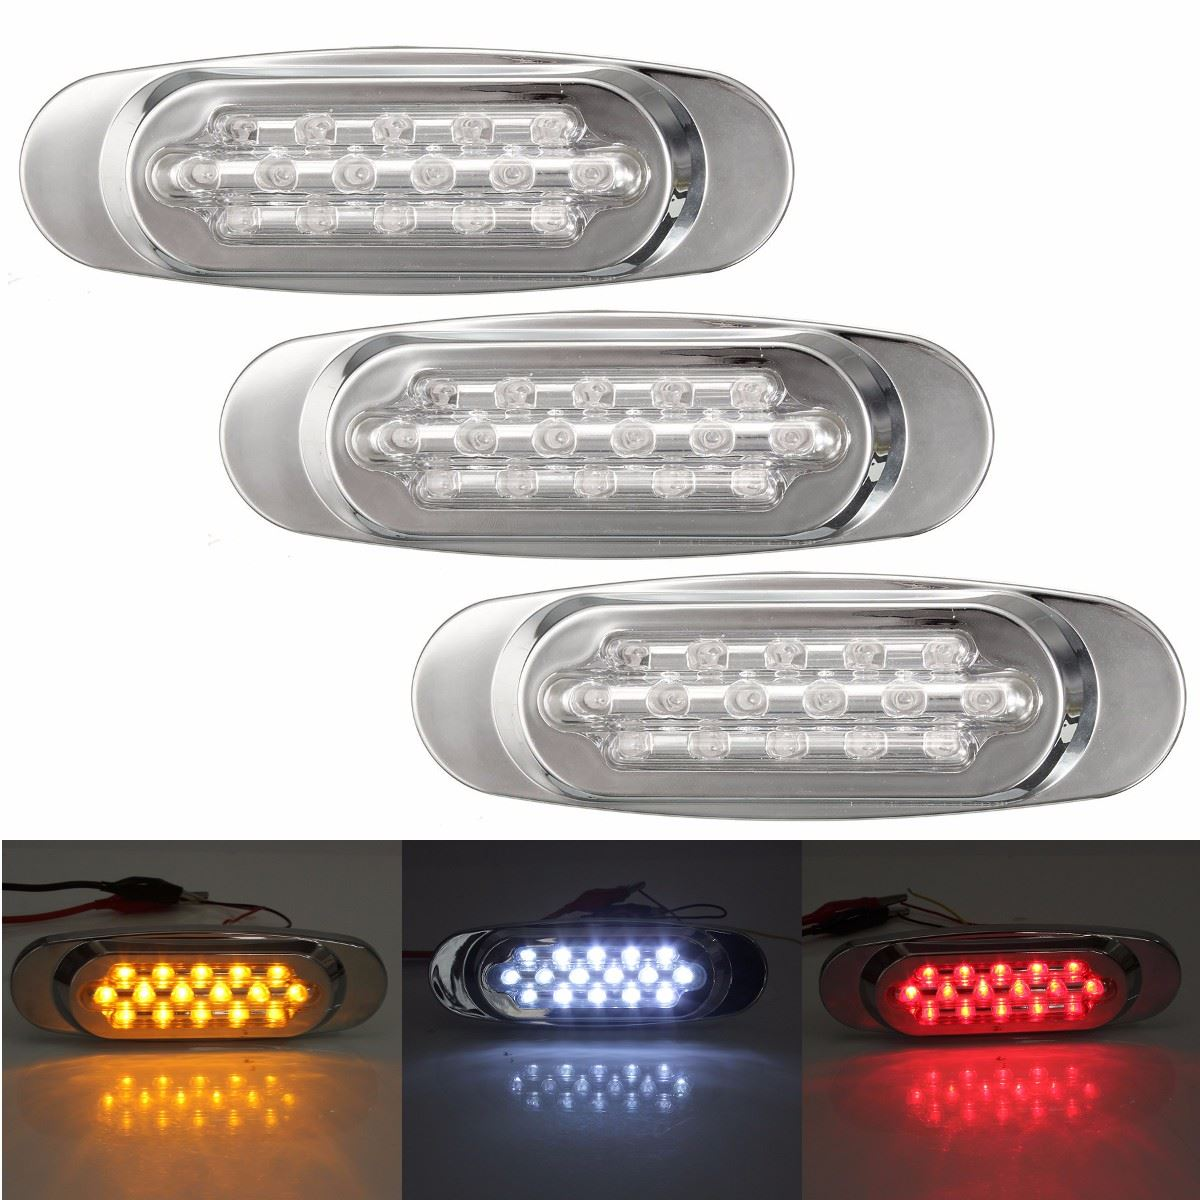 12V Waterproof 16 LED Beads Car Trailer Truck Edge Side Marker Clearance Lights Straight Bulb Warning Lamp Caravan Parking Light bosnic ph control 1